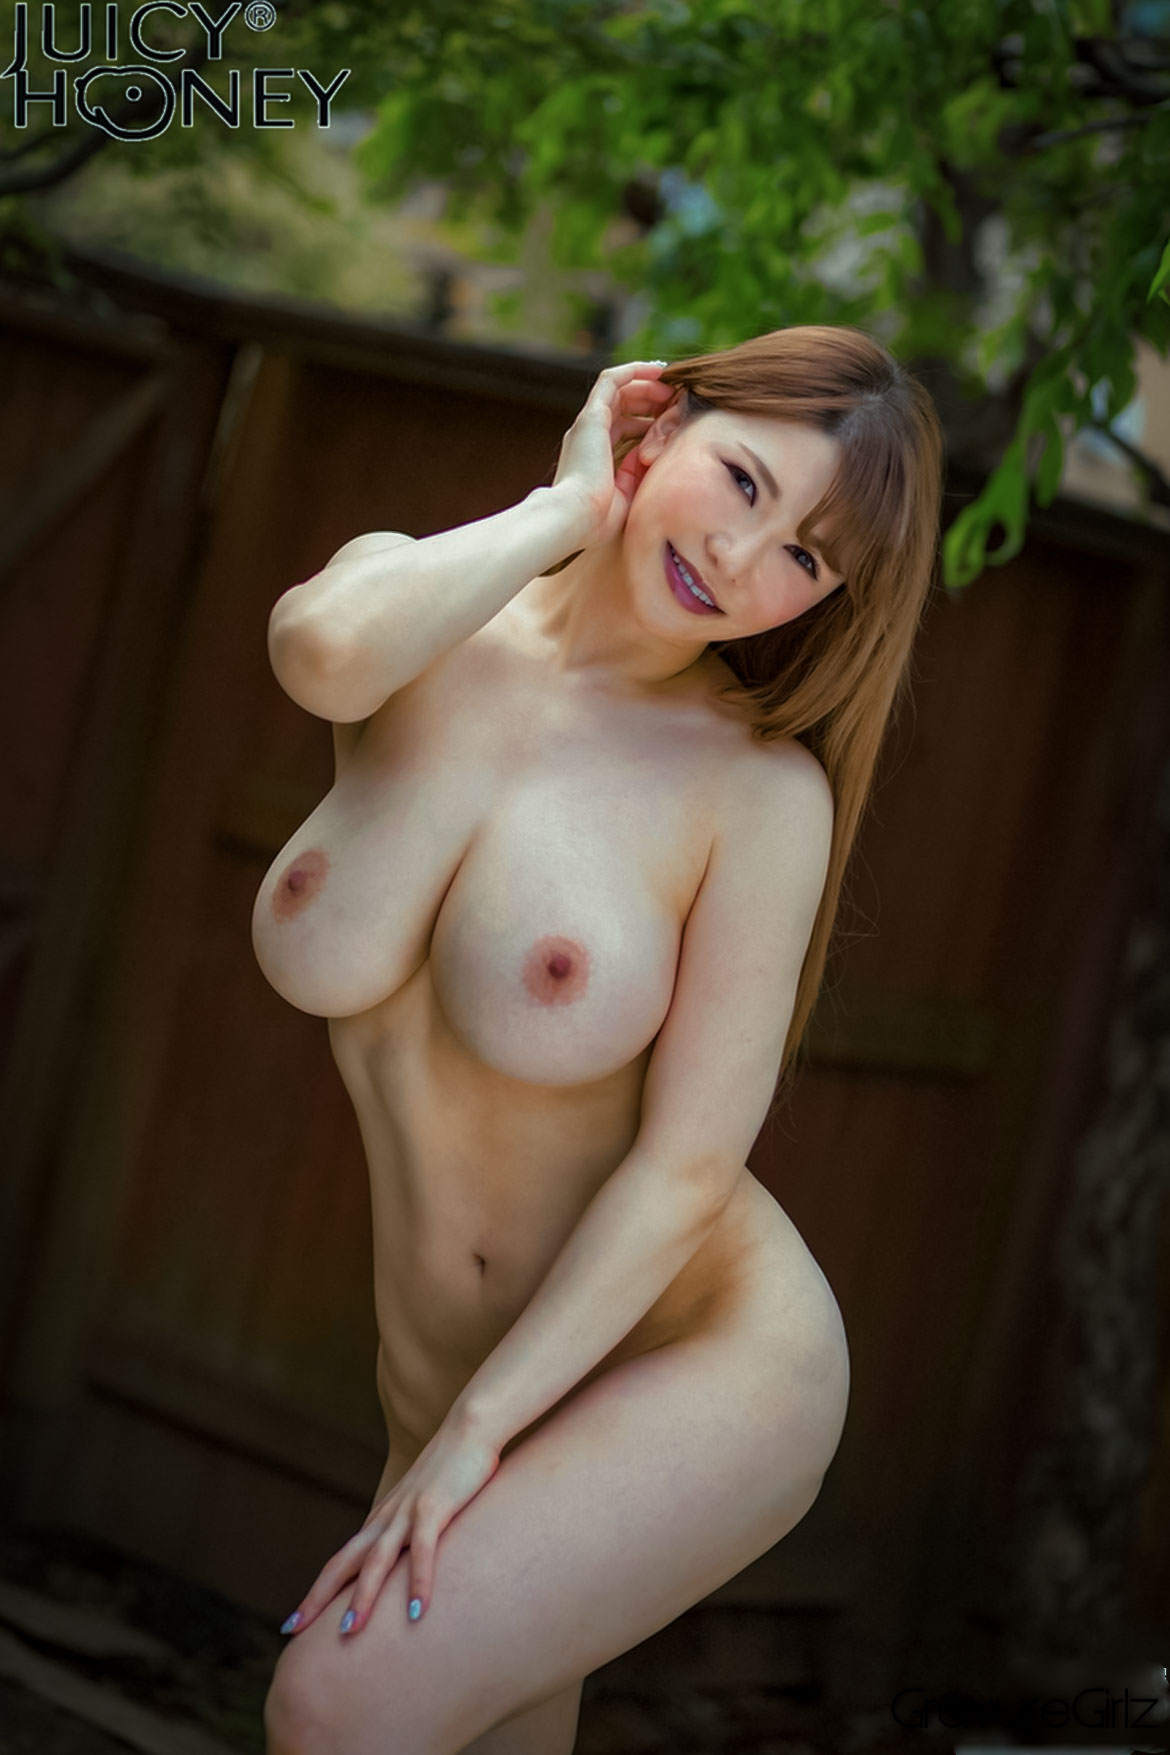 A tiny asian girl who loves anal yh - 3 8